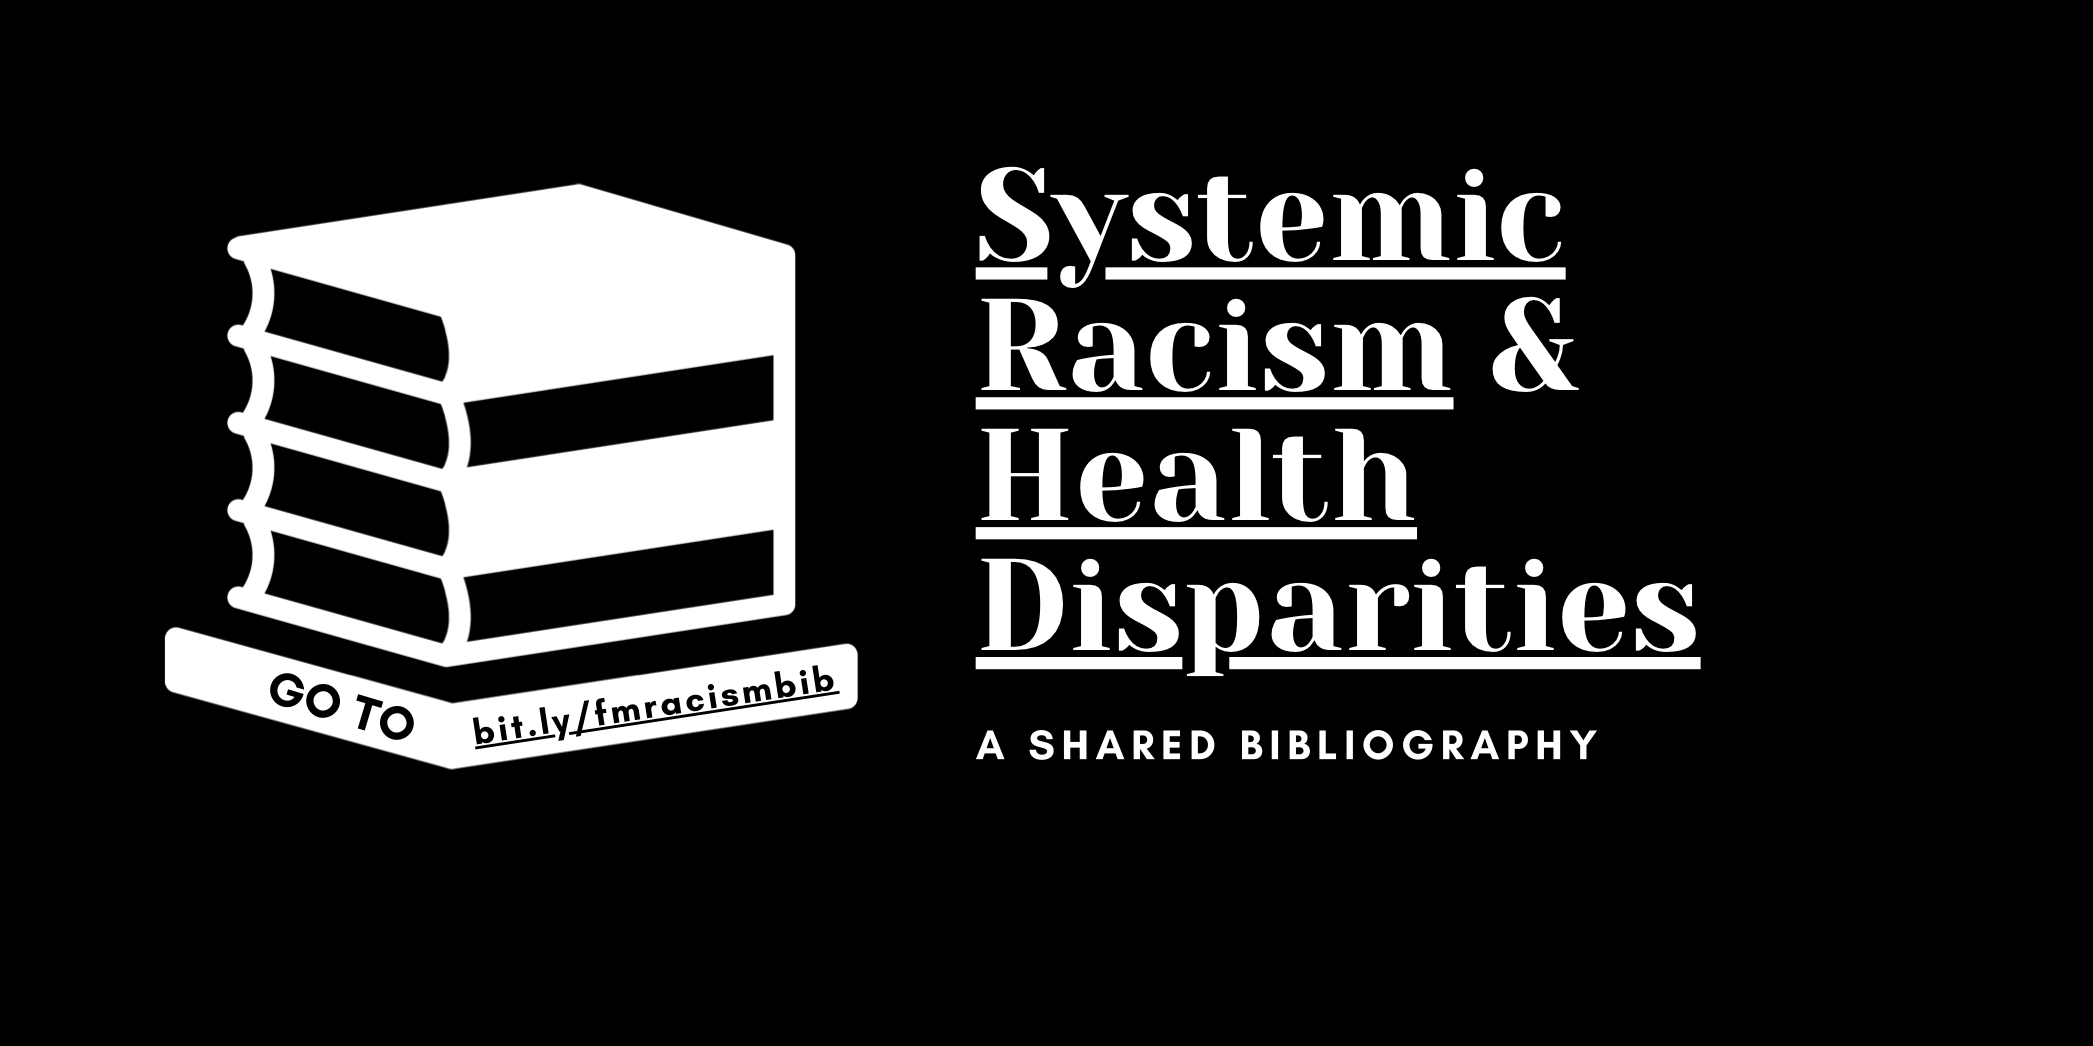 Systemic racism and health disparities a shared bibliography go to bit.ly/fmracismbib